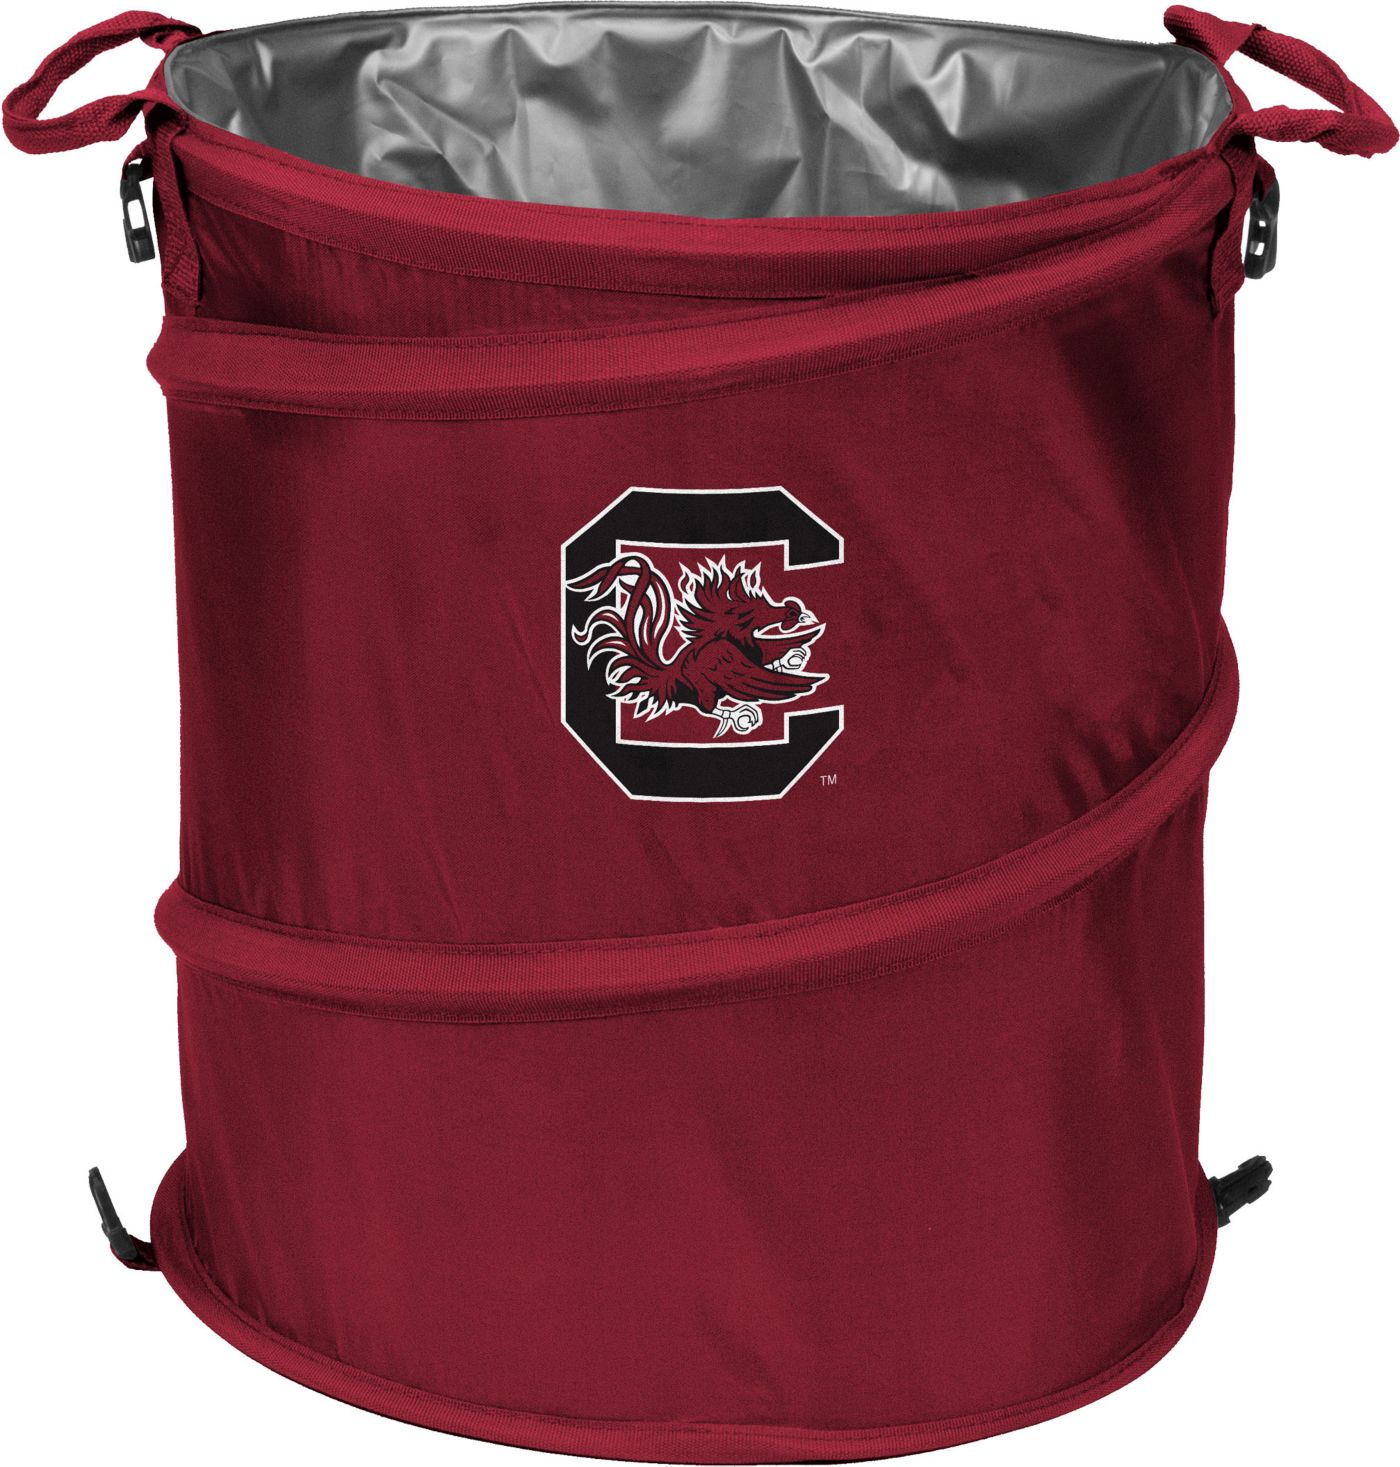 South Carolina Gamecocks Trash Can Cooler